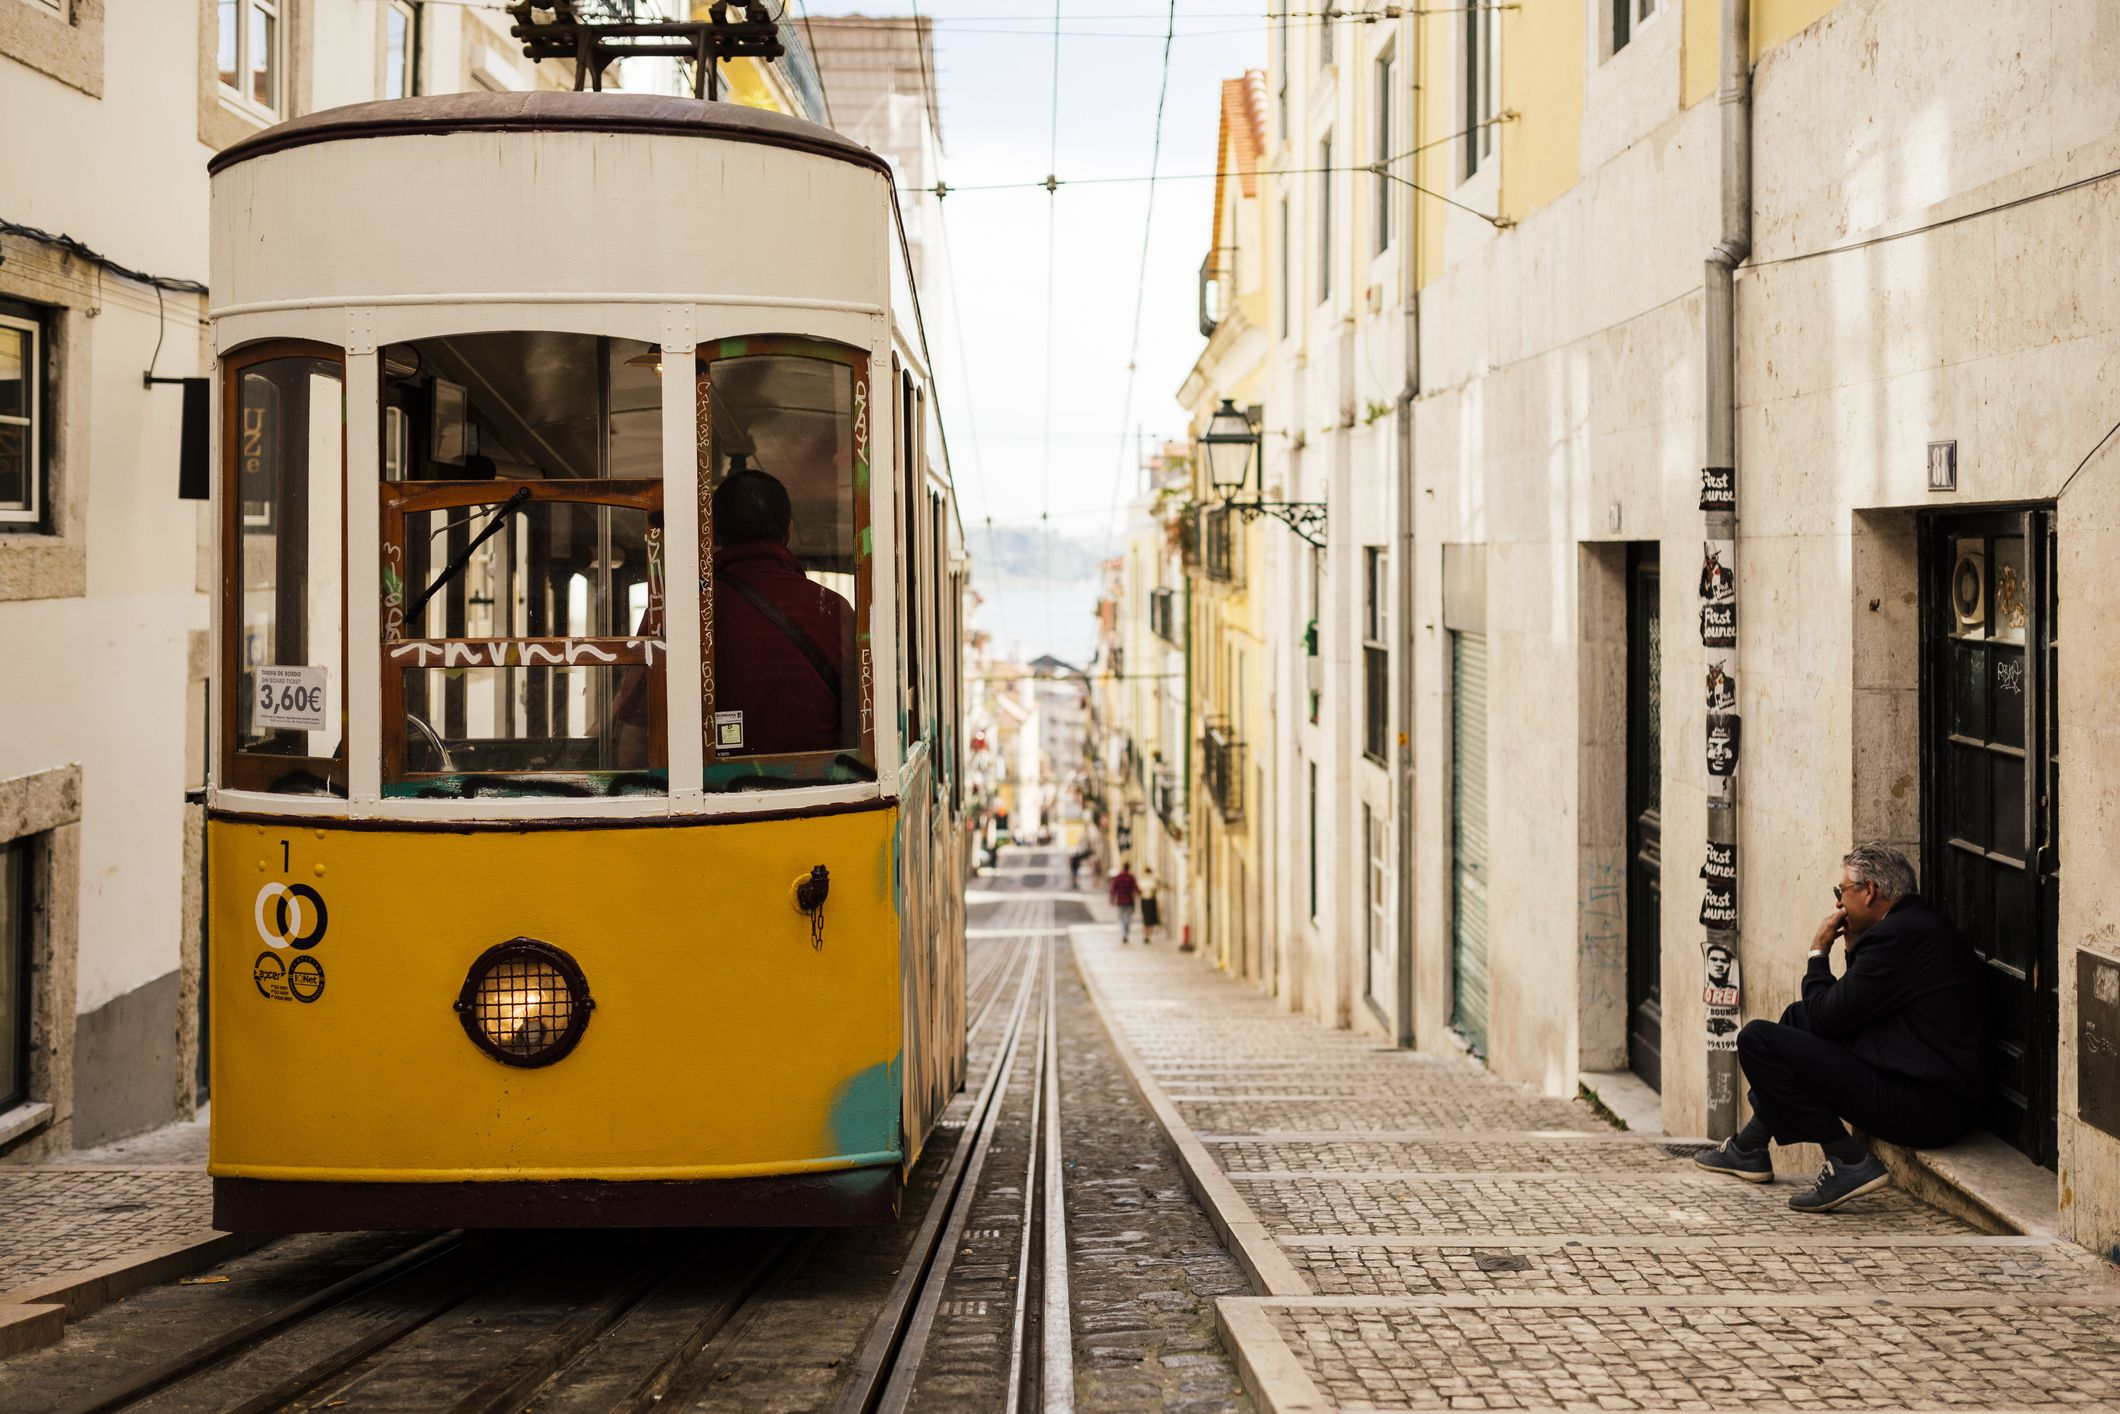 10 Things to Do in Lisbon for Under 10 Euros